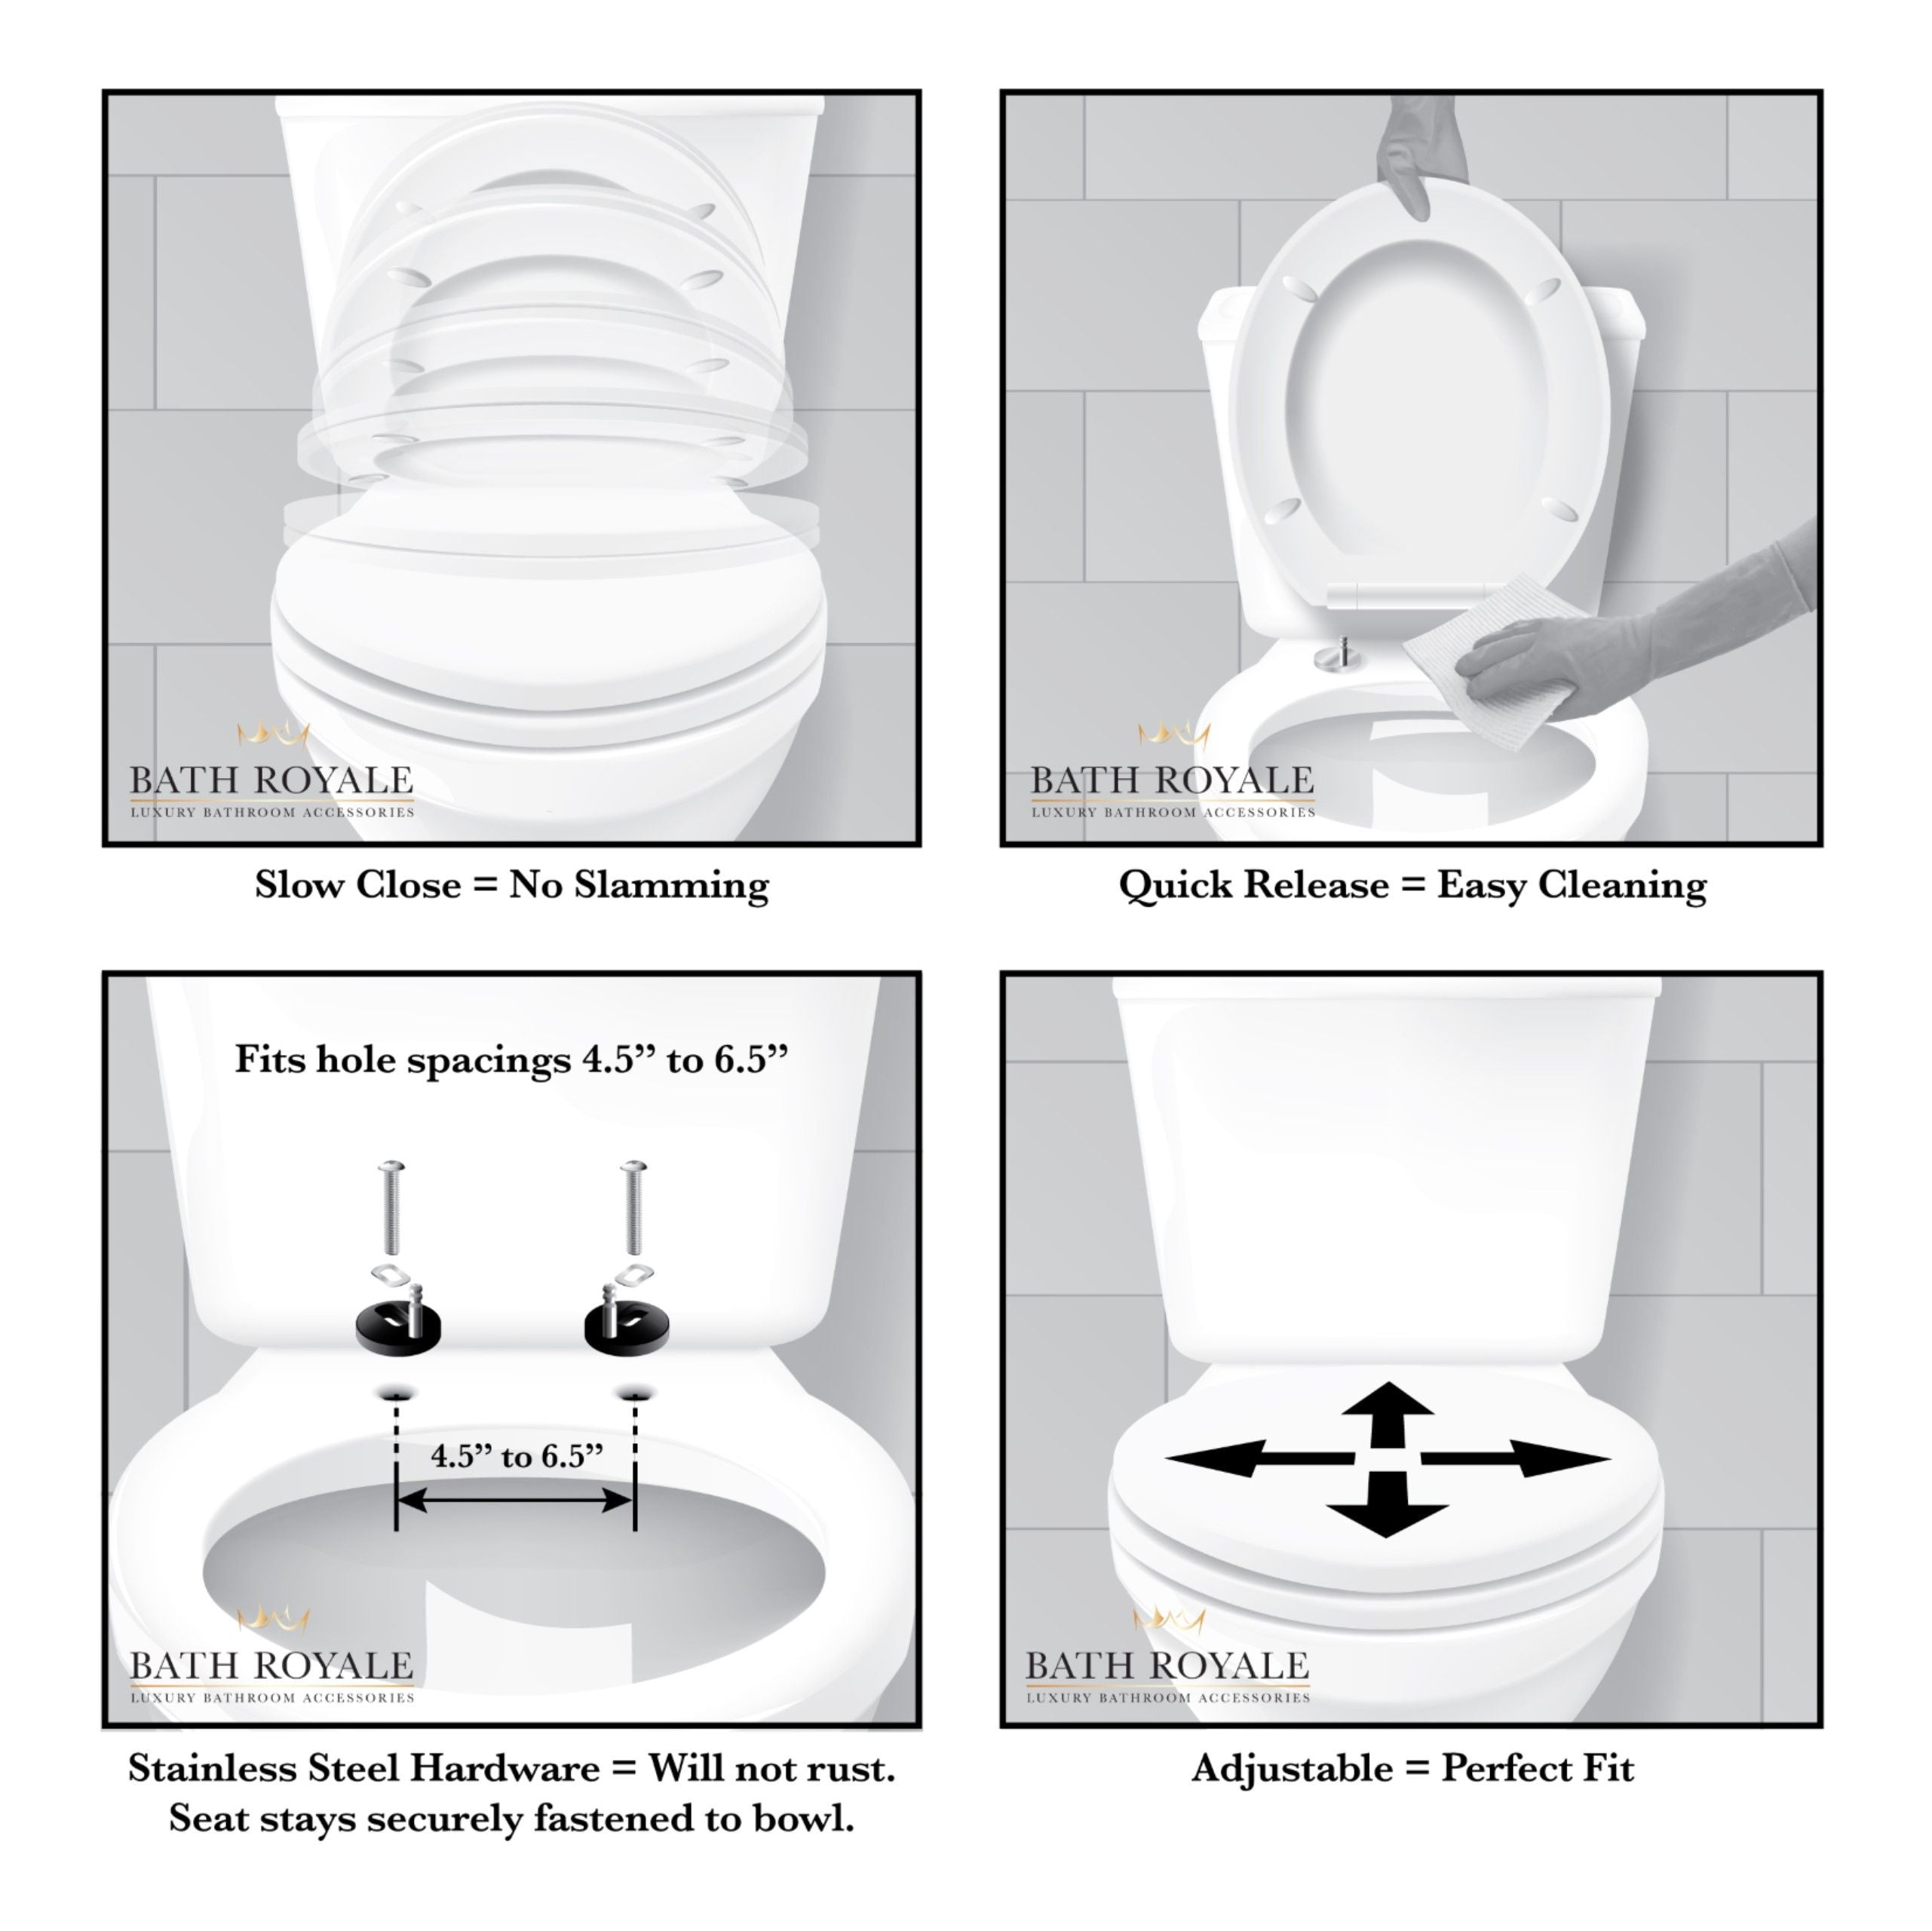 Bath Royale Toilet Seat features